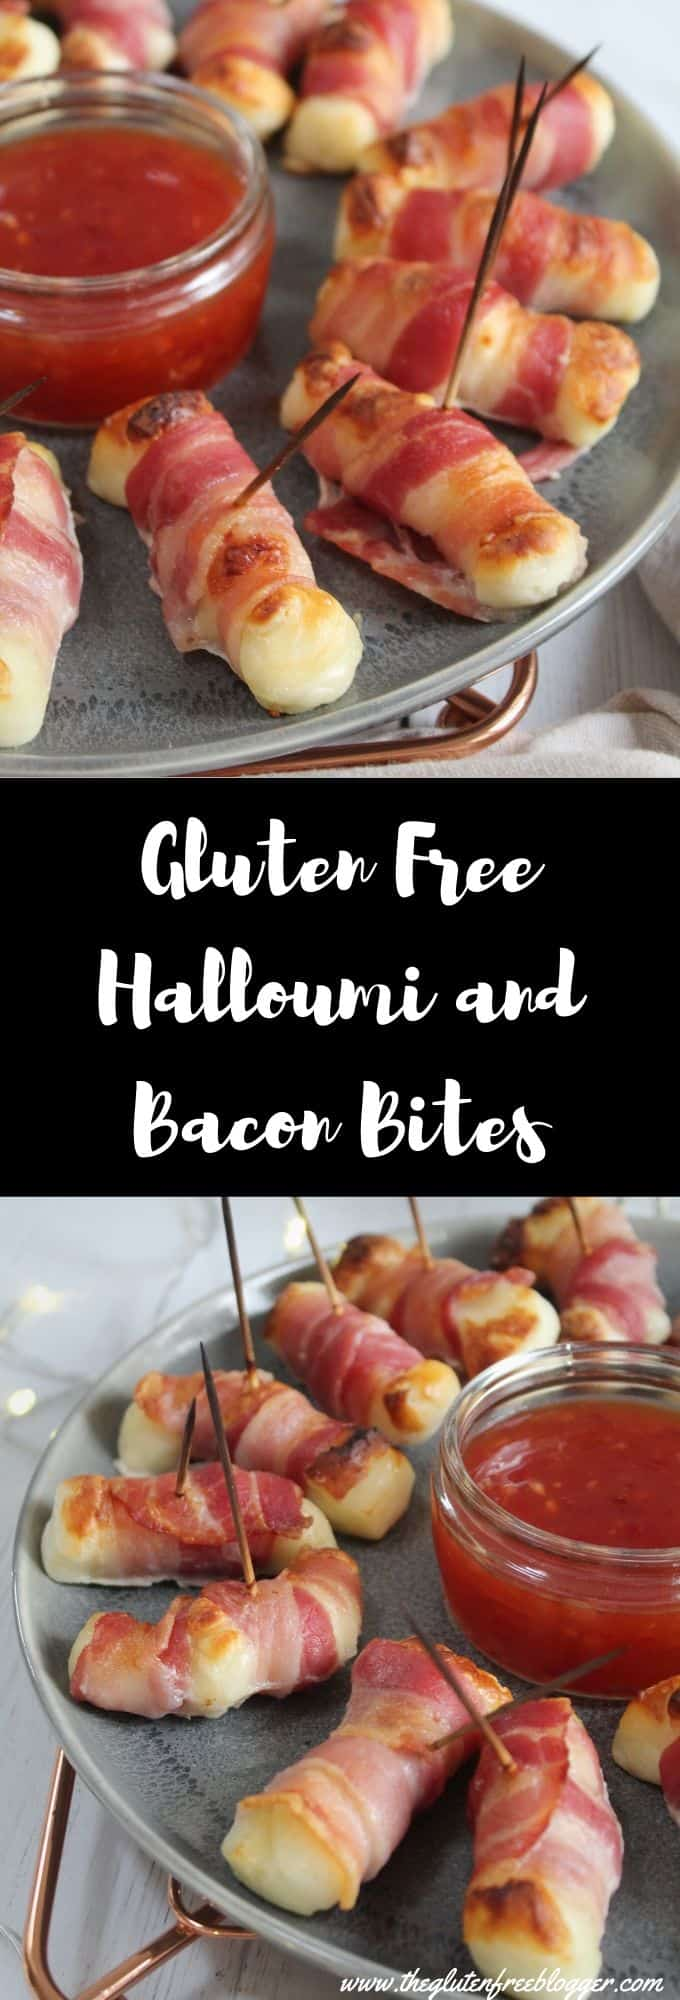 gluten free halloumi and bacon bites christmas party food recipe inspiration ideas